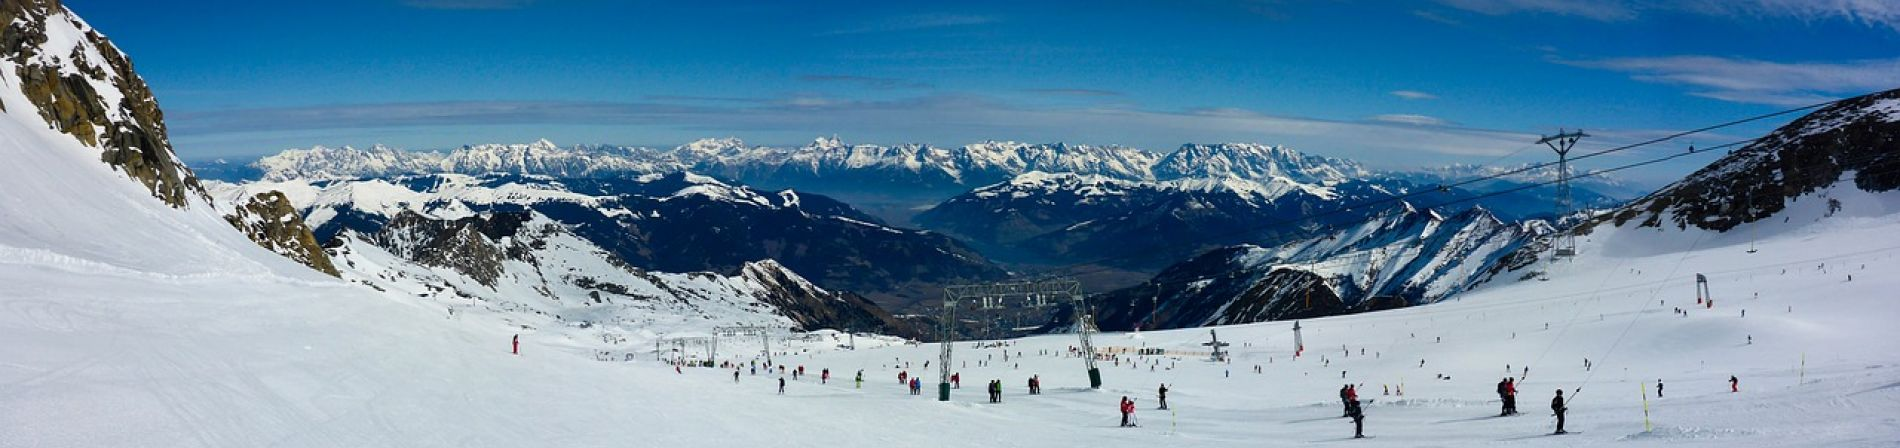 Family ski holiday to Austria